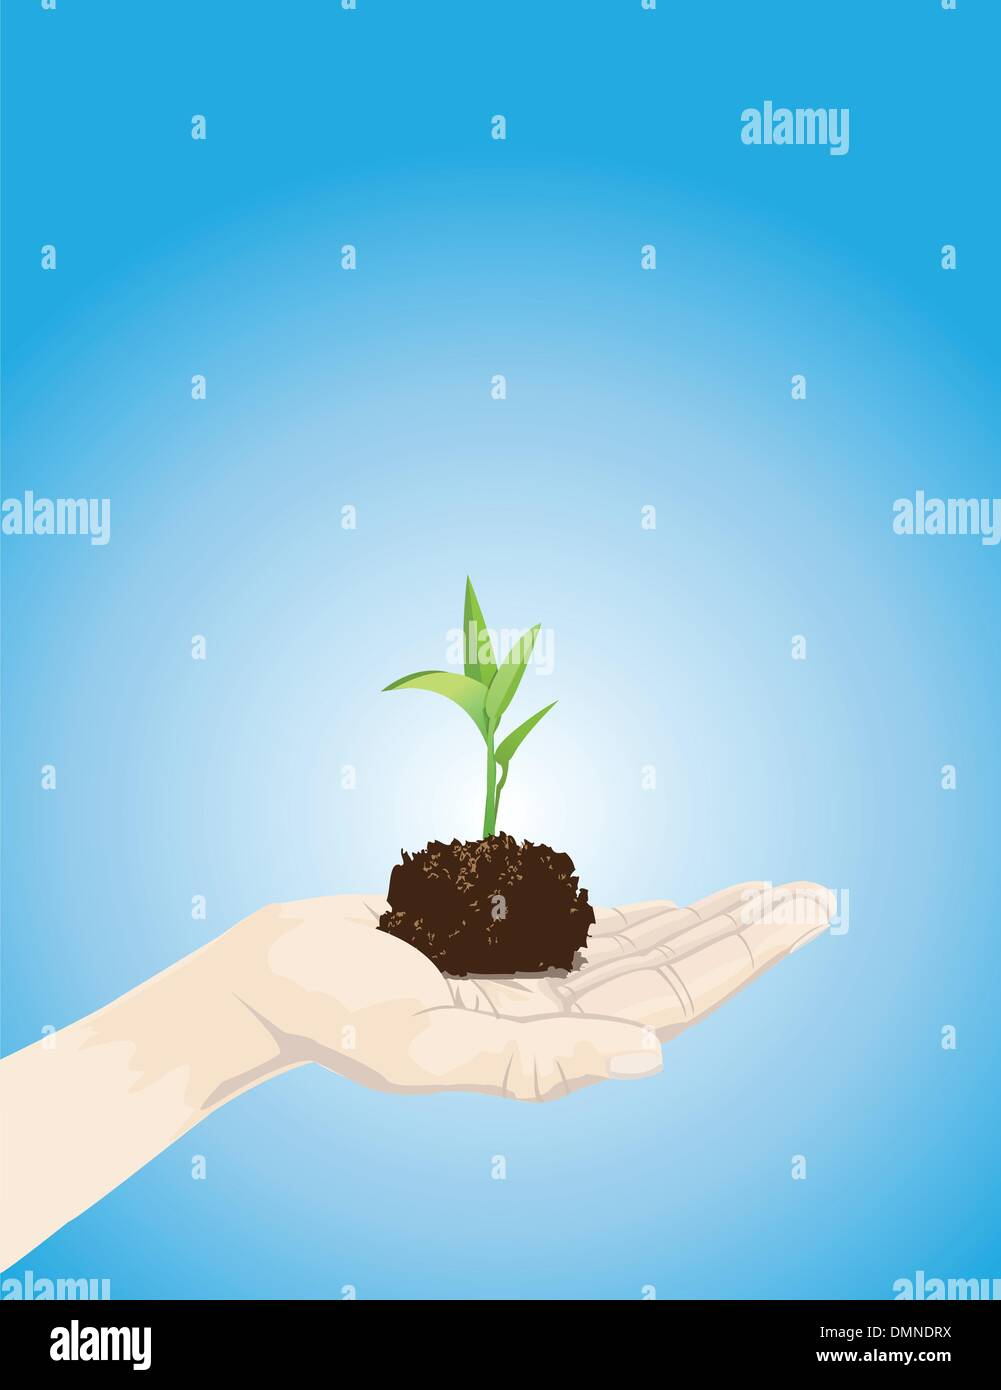 holding a plant - Stock Vector